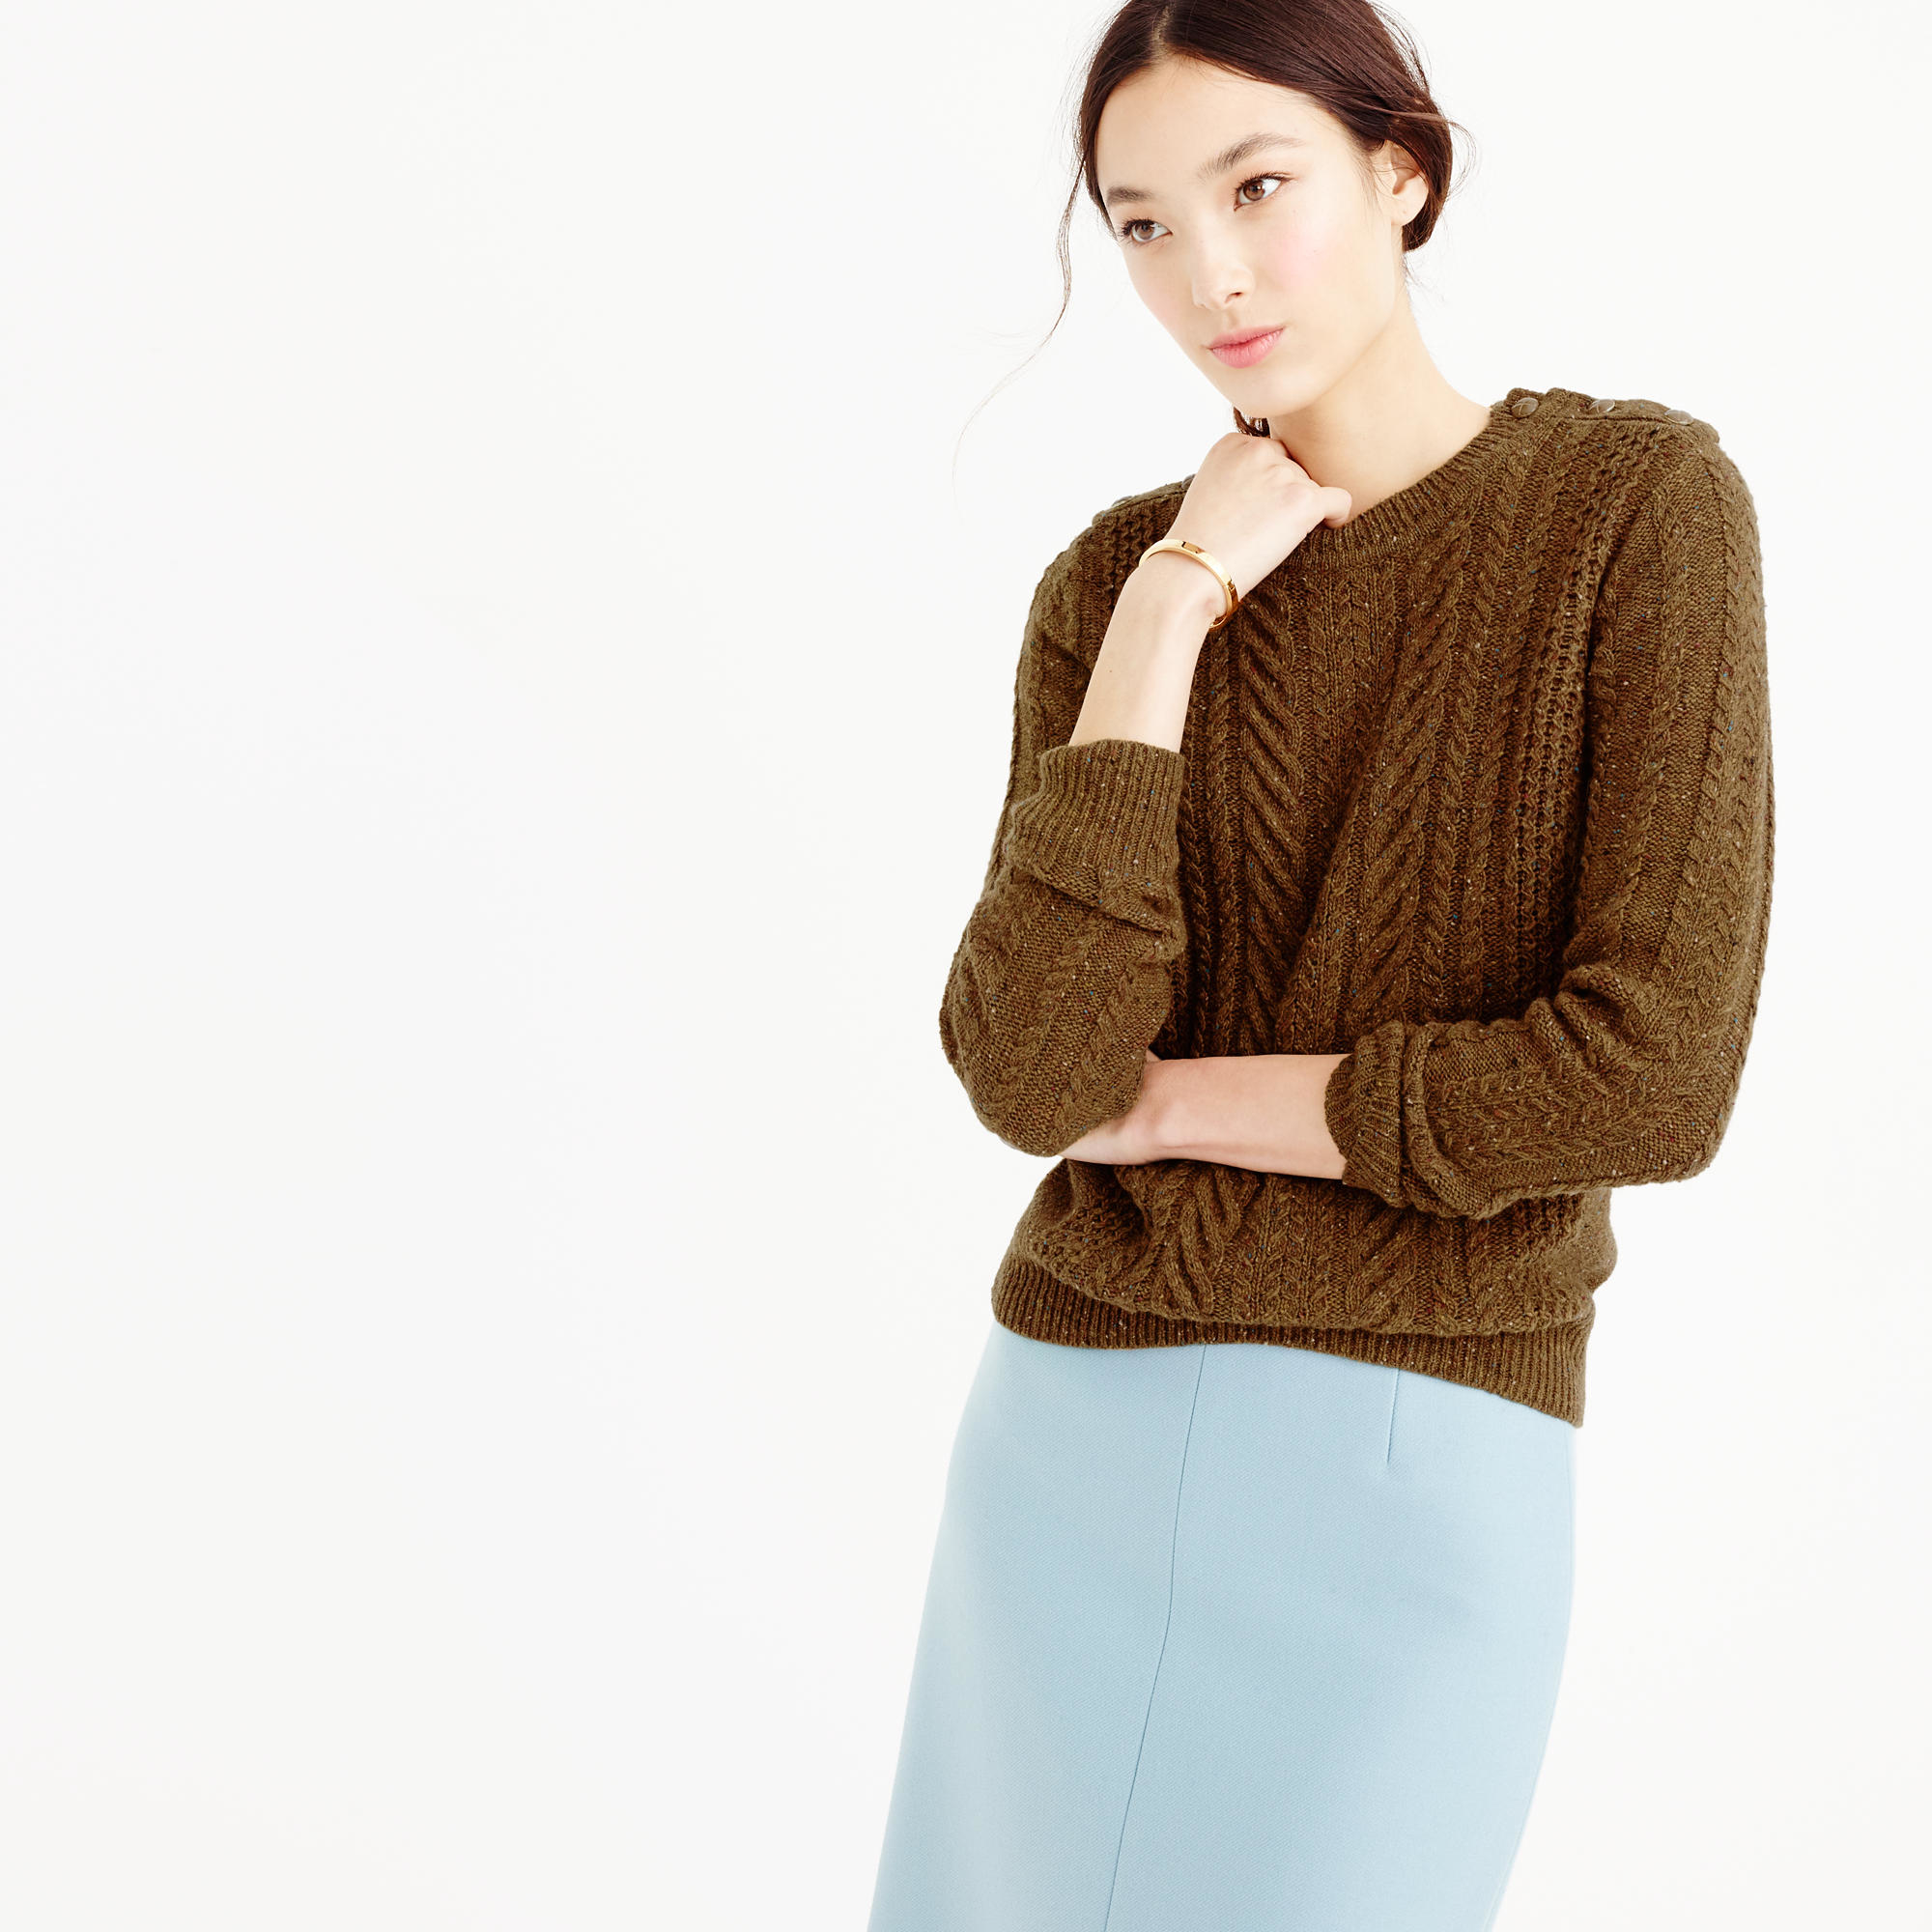 J.crew Perfect Cable Sweater In Speckled Wool in Brown | Lyst